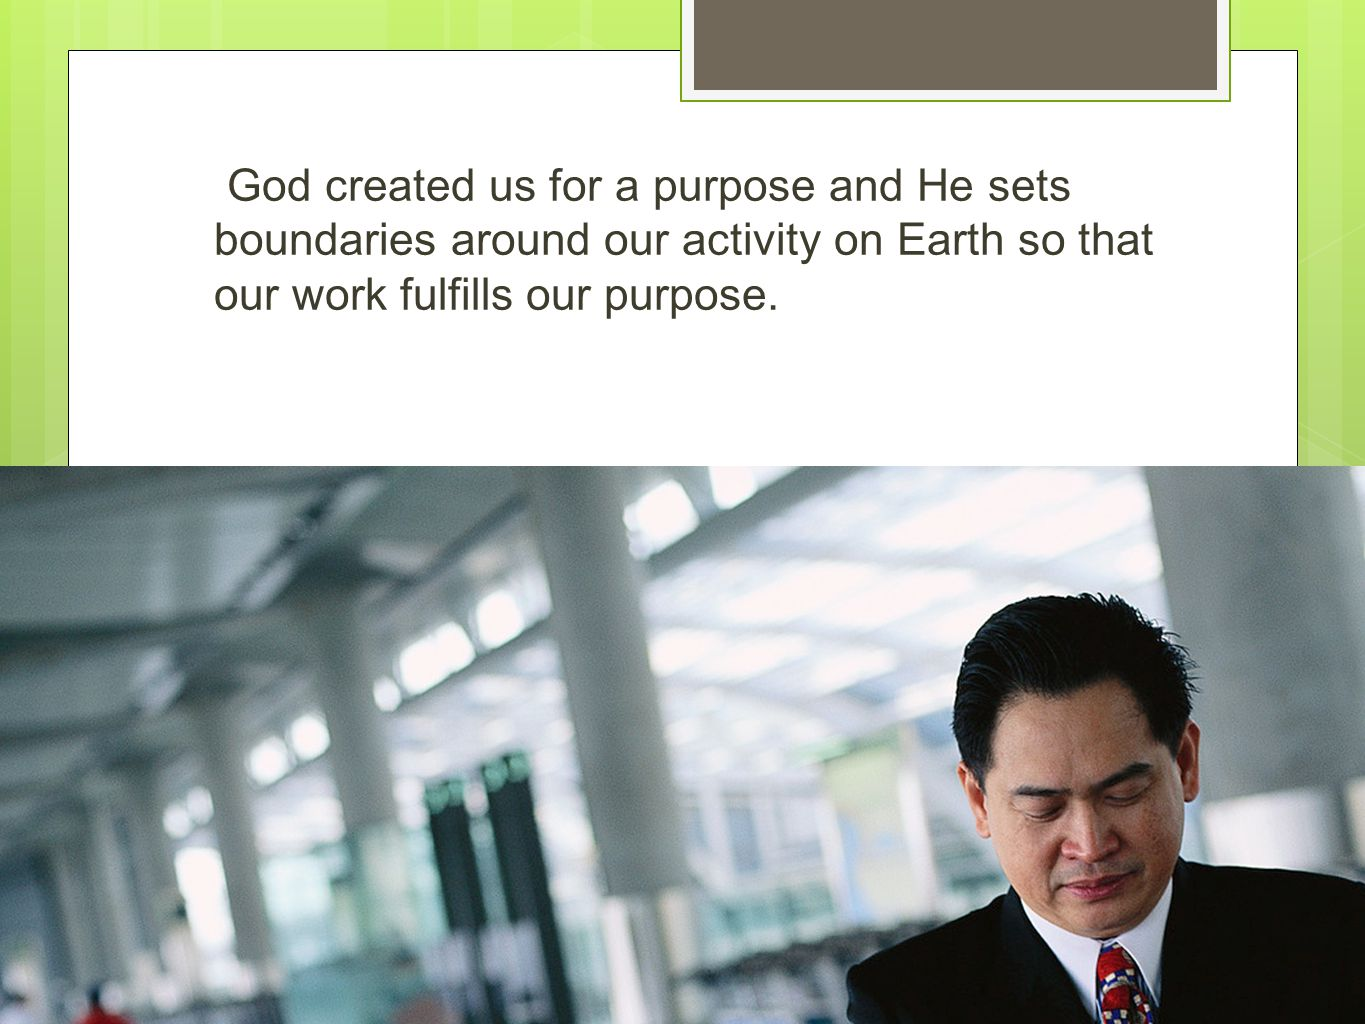 God created us for a purpose and He sets boundaries around our activity on Earth so that our work fulfills our purpose.